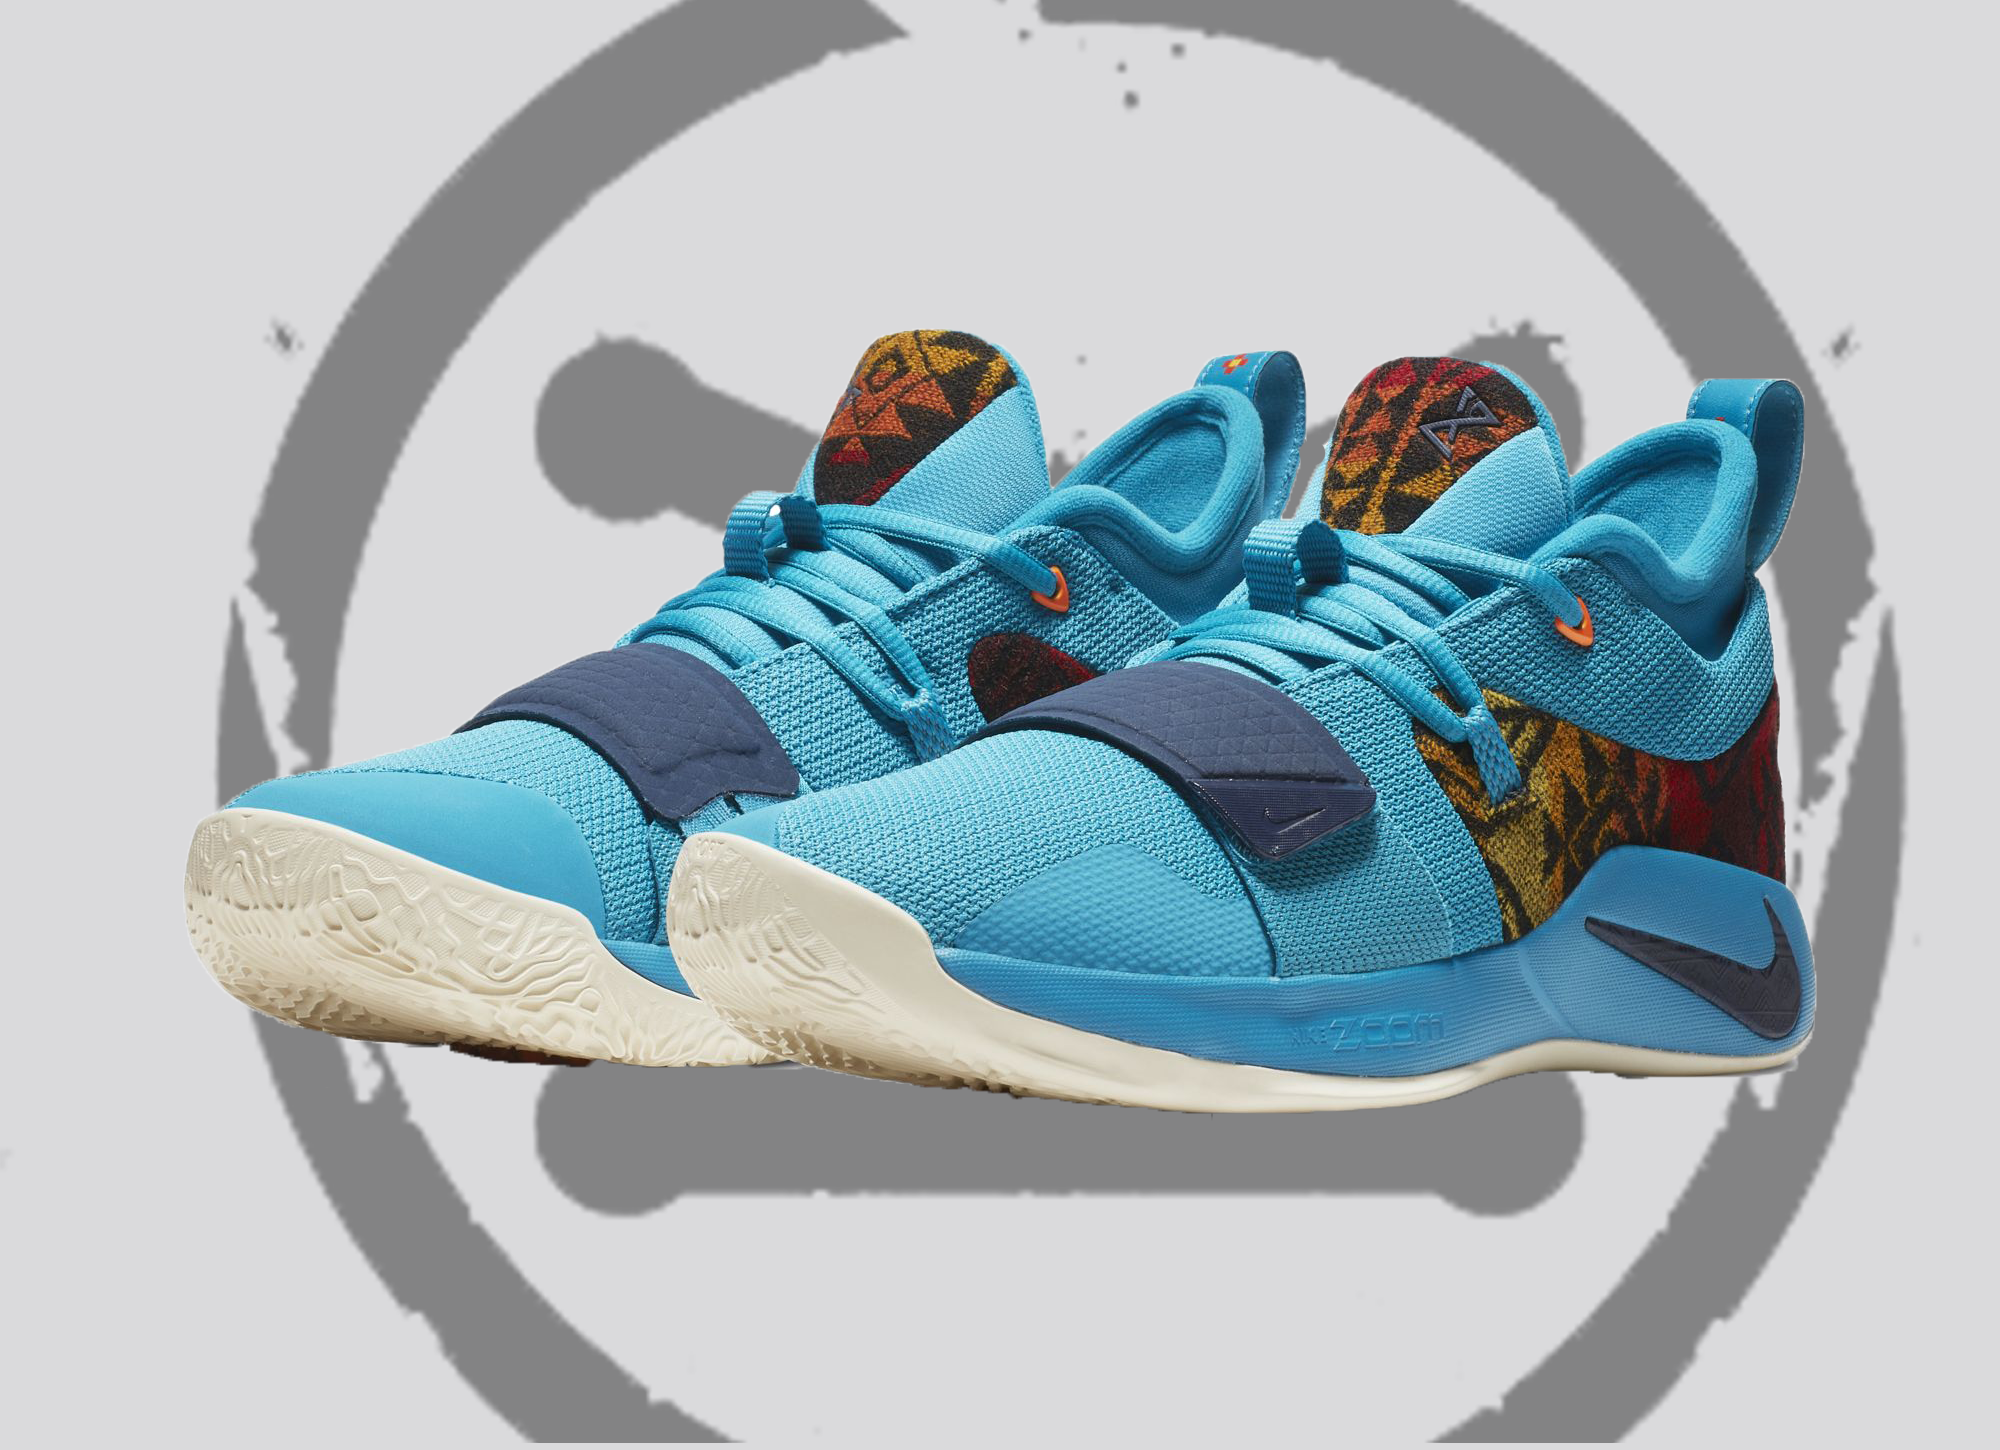 new concept fc0a4 81a17 The Nike PG 2.5 'Pendelton' is Arriving Soon - WearTesters